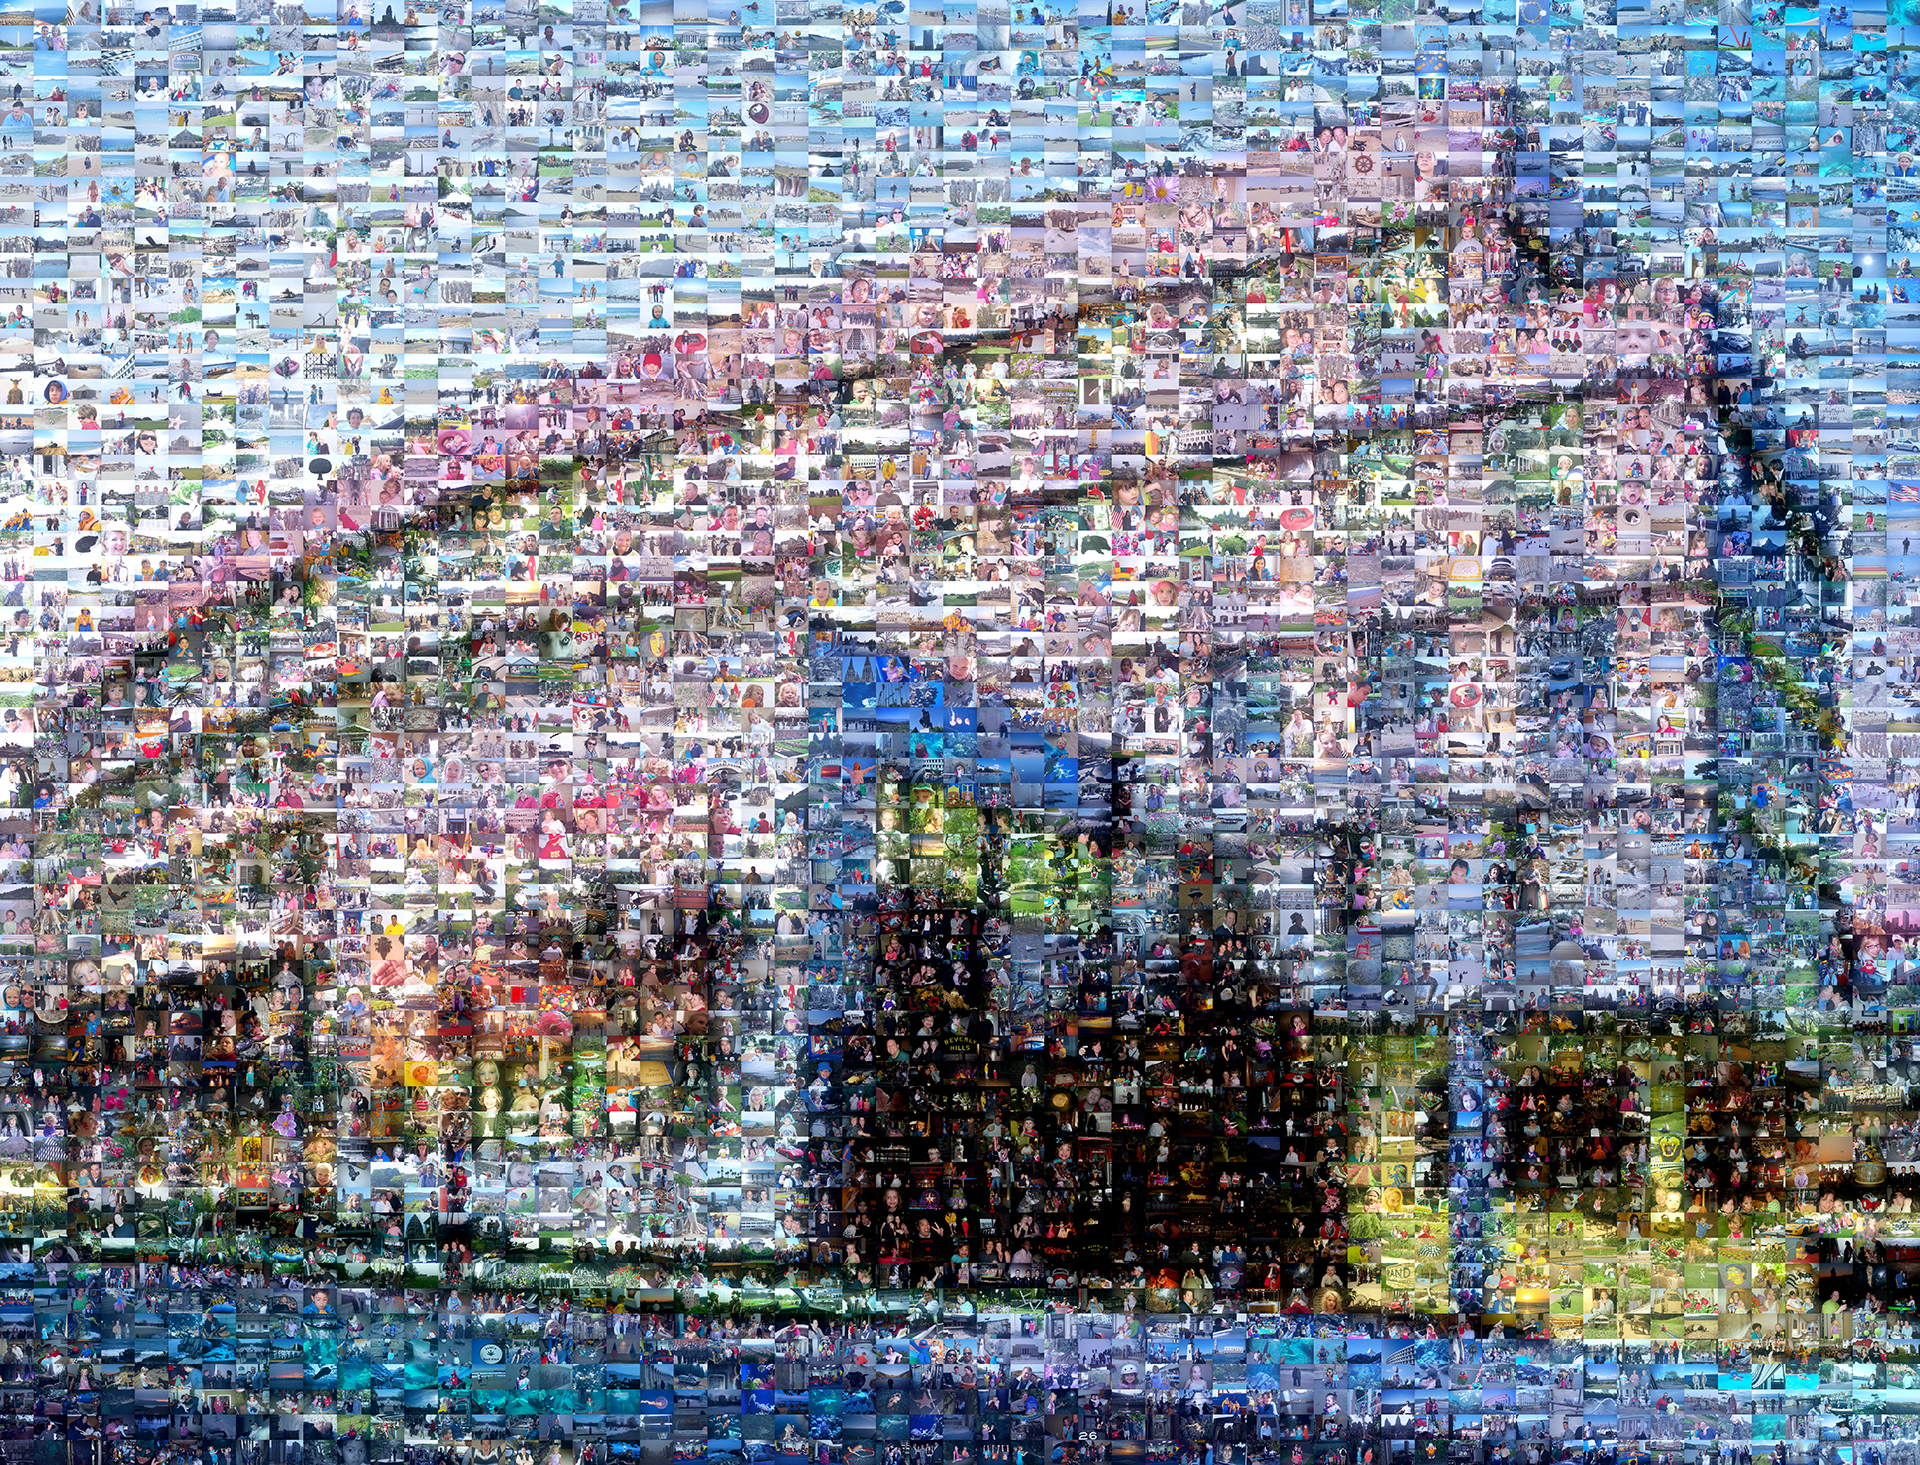 photo mosaic This corporate building was created using 3,628 photos